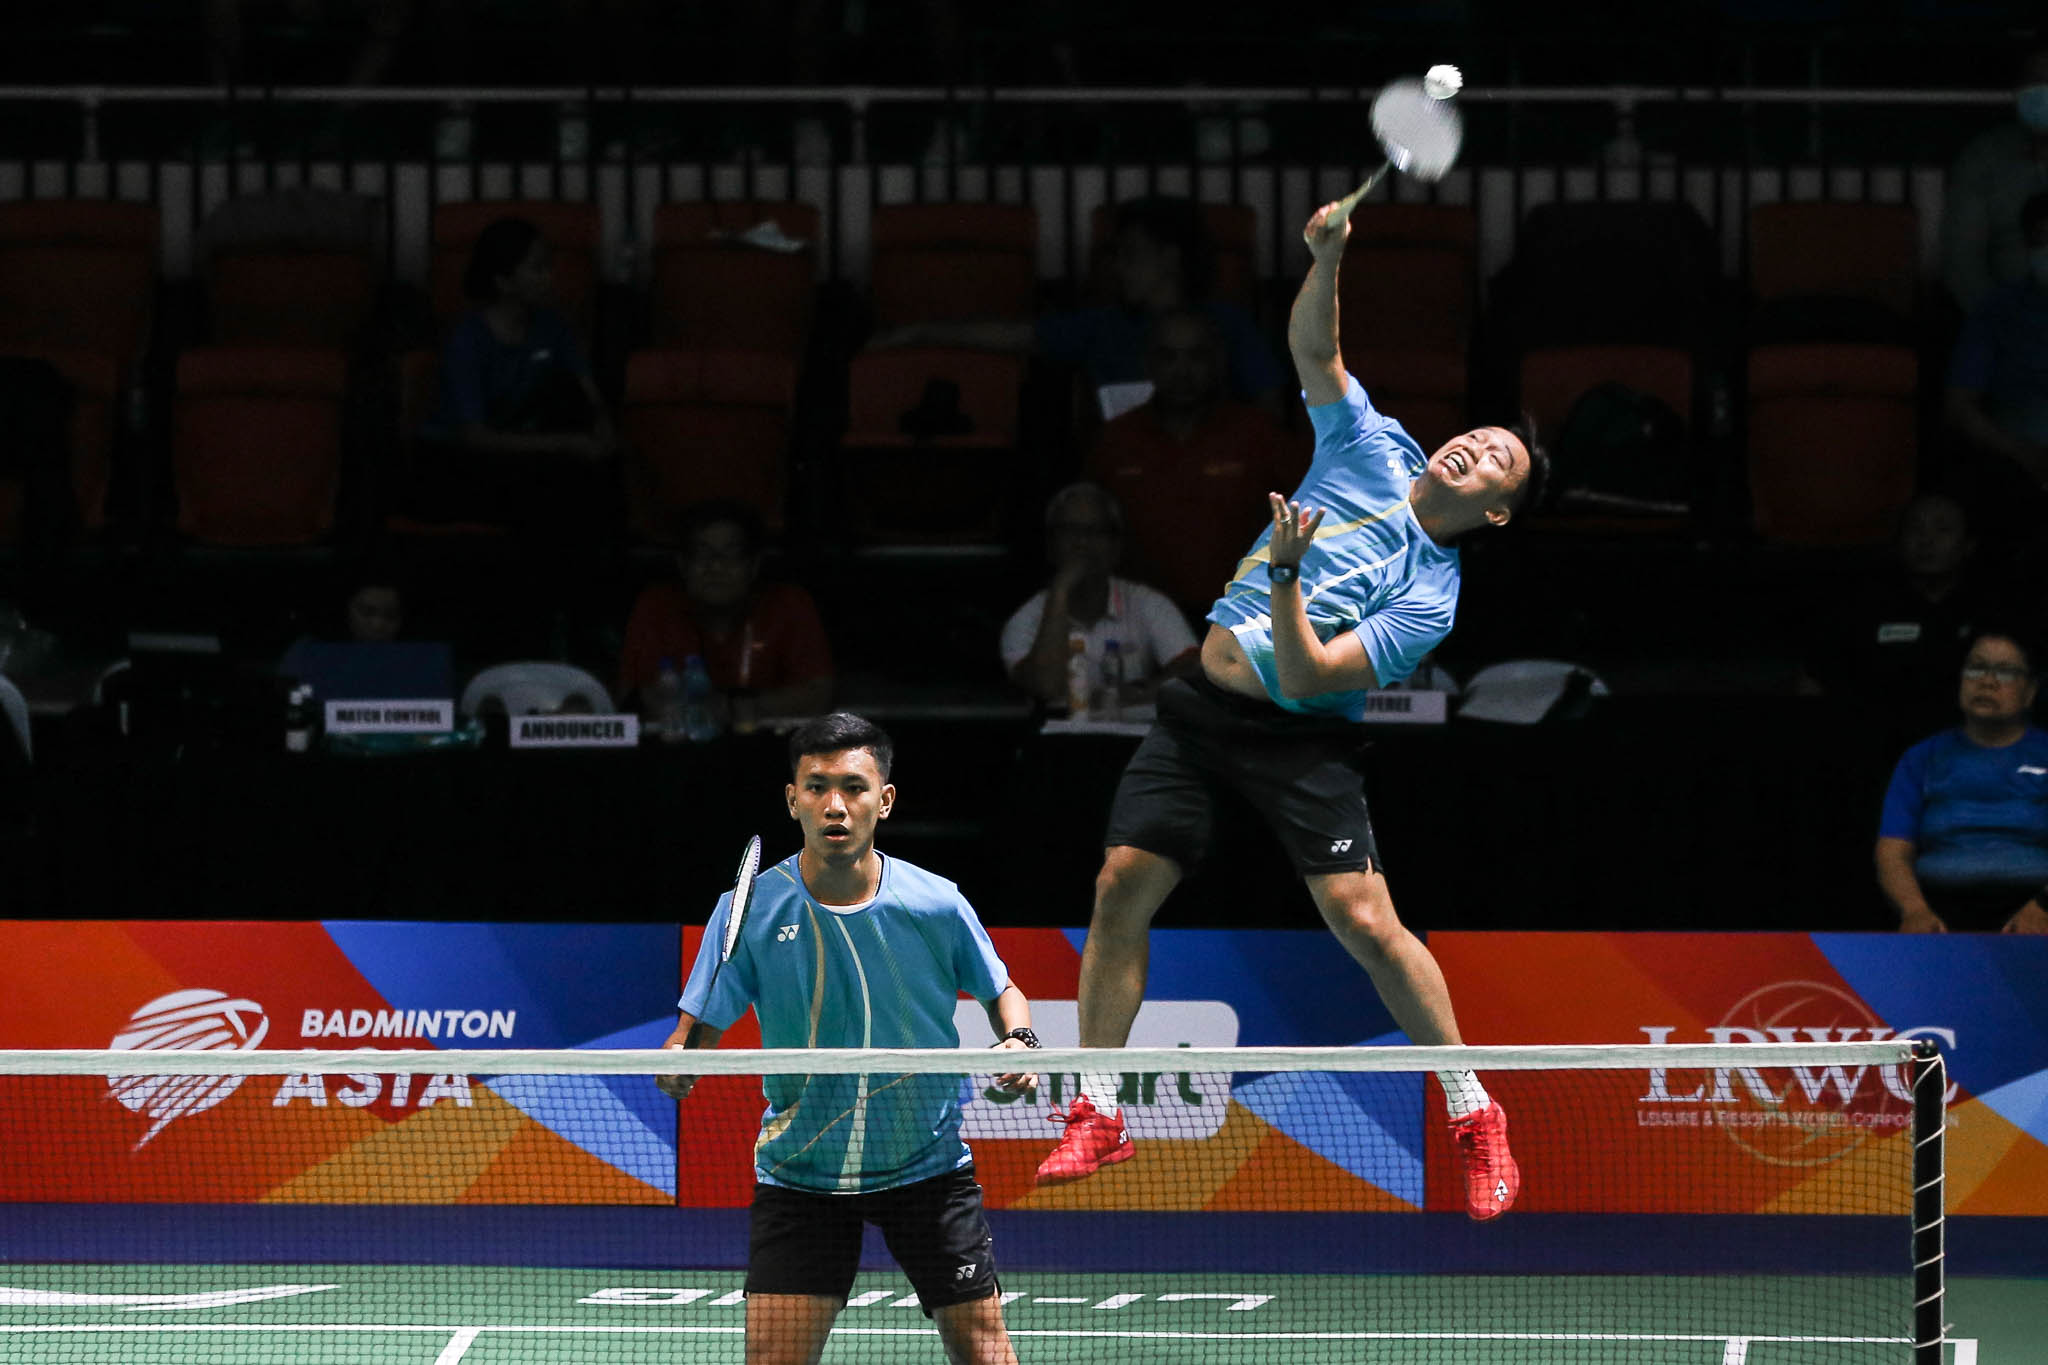 2020-SMART-Badminton-Asia-Manila-Team-Championships-Indonesia-def-Philippines-Alvin-Morada-and-Ariel-Magnaye Gallant Philippines falls to Christie, Indonesia in Asian Badminton Team QF 2020 Badminton Asia Team Championships Badminton News  - philippine sports news